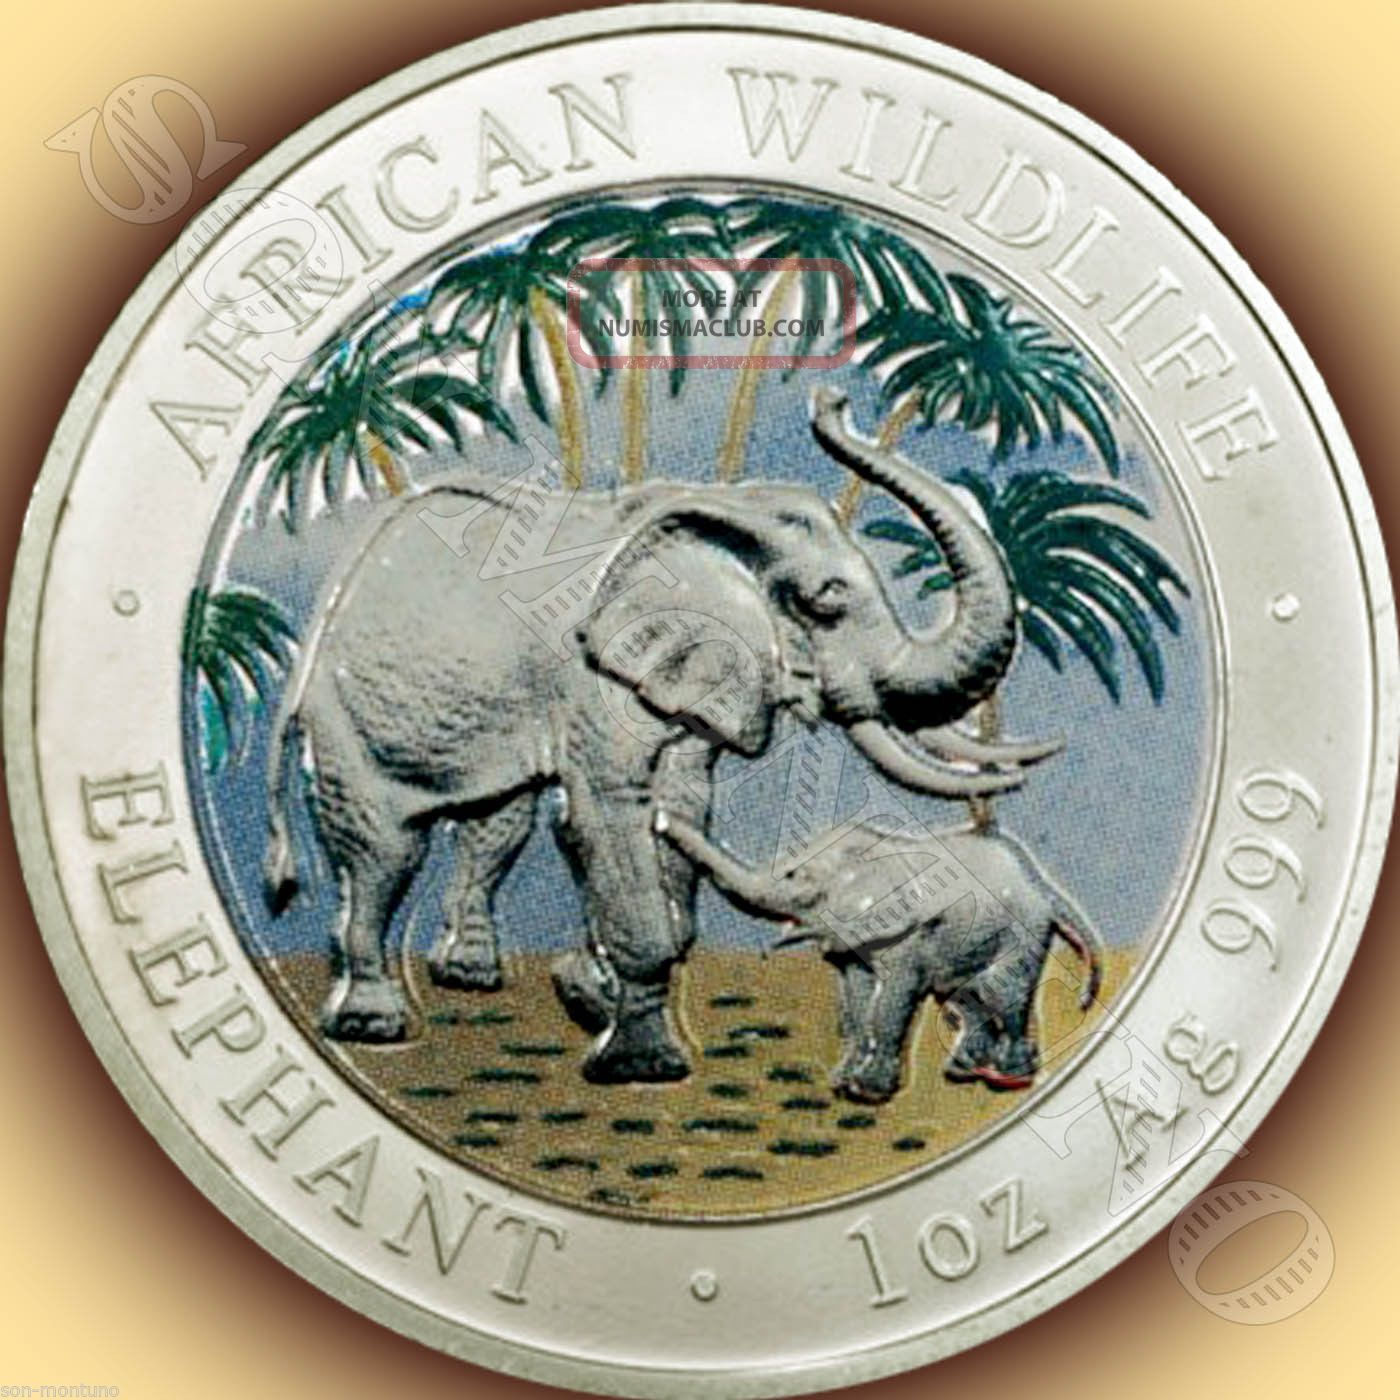 2007 Somalia African Wildlife Colorized Elephant Silver Coin Hard Date To Find Africa photo